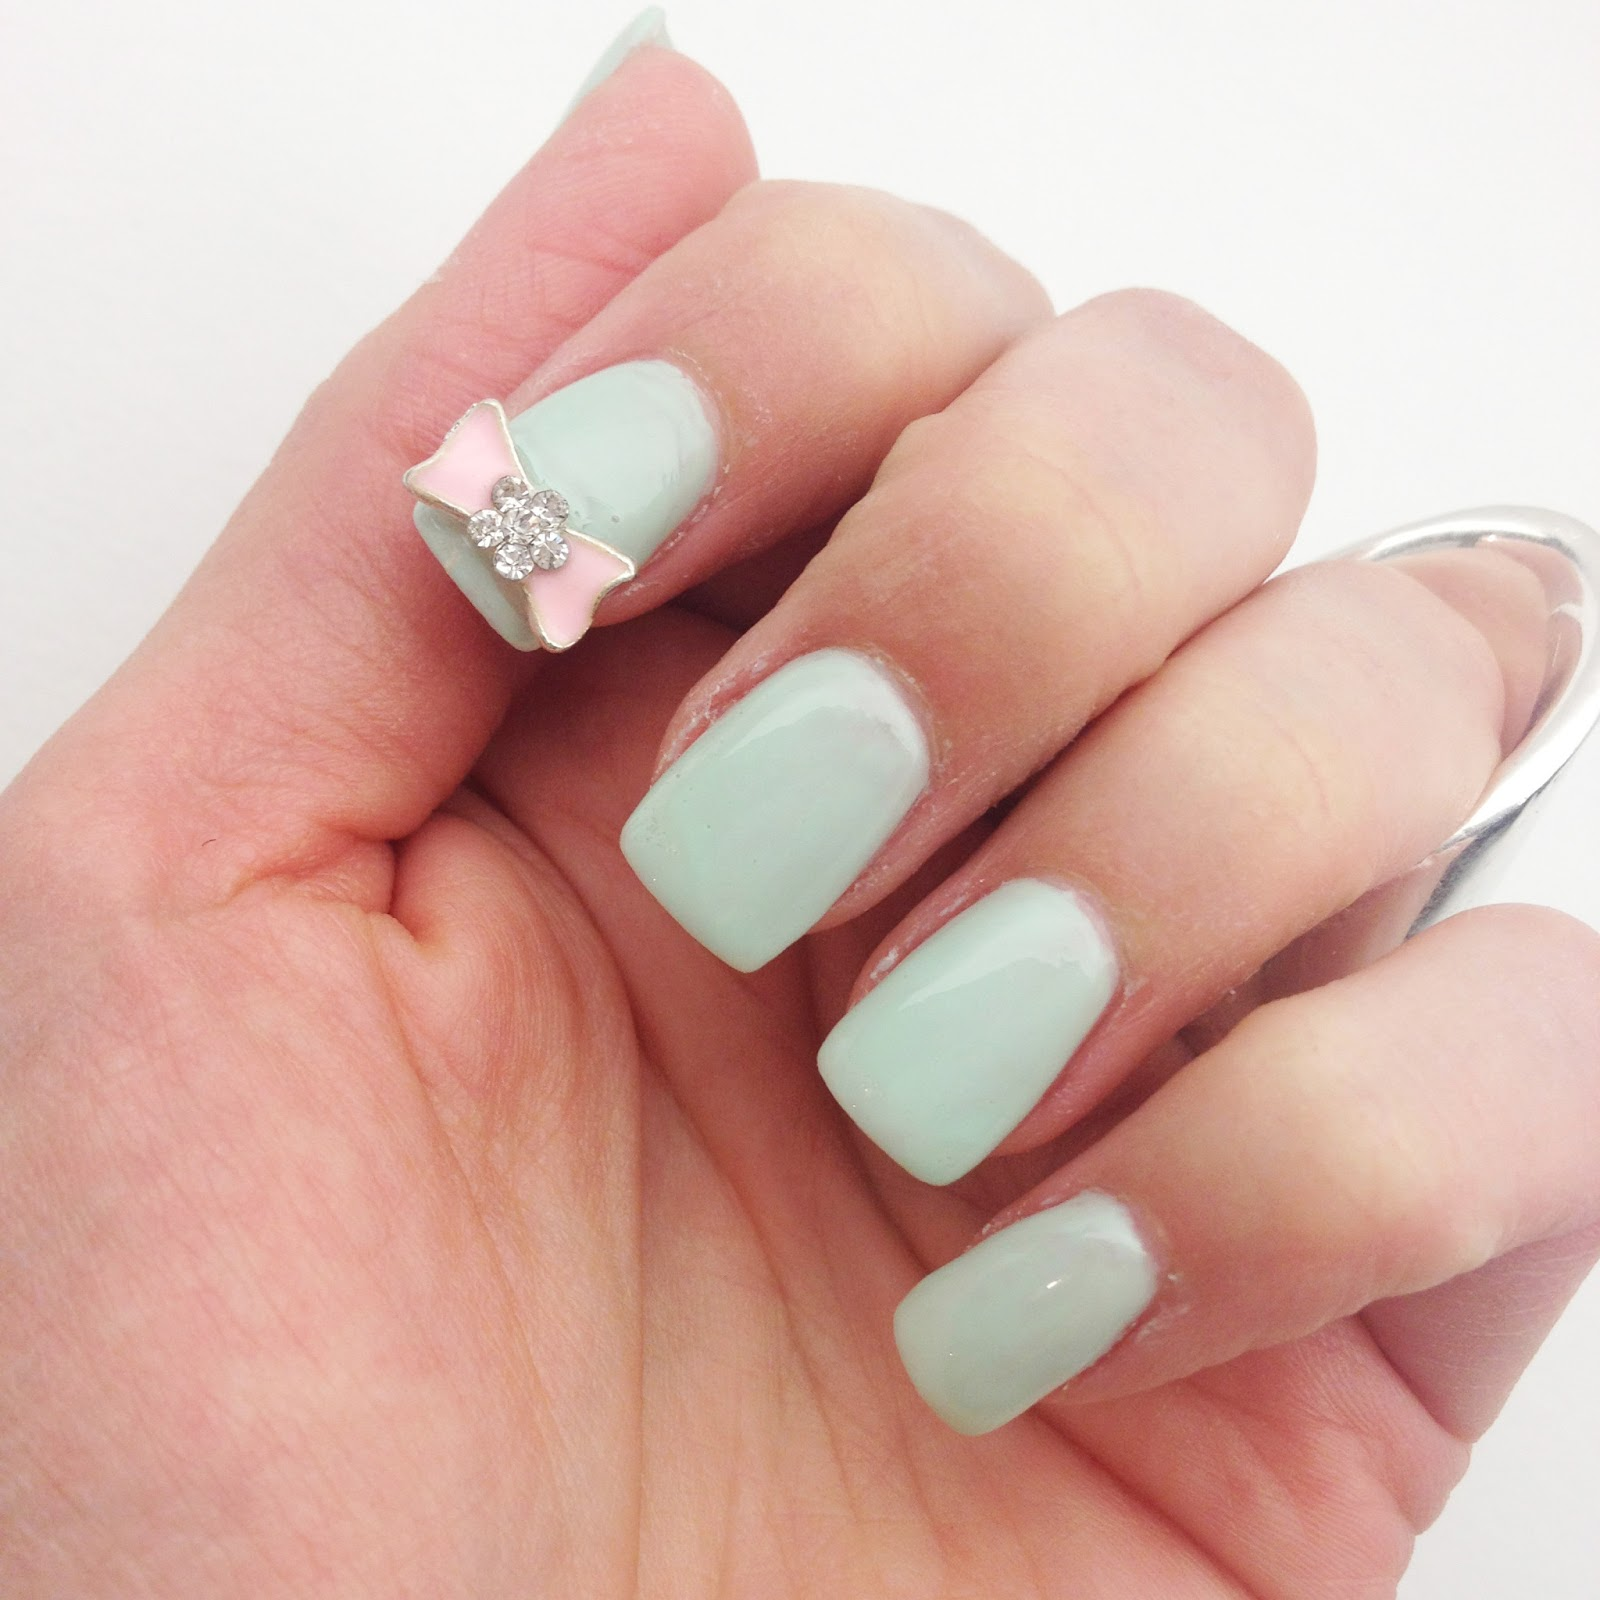 kandeej.com: Cute Bow Nails like an ice cream parlor!